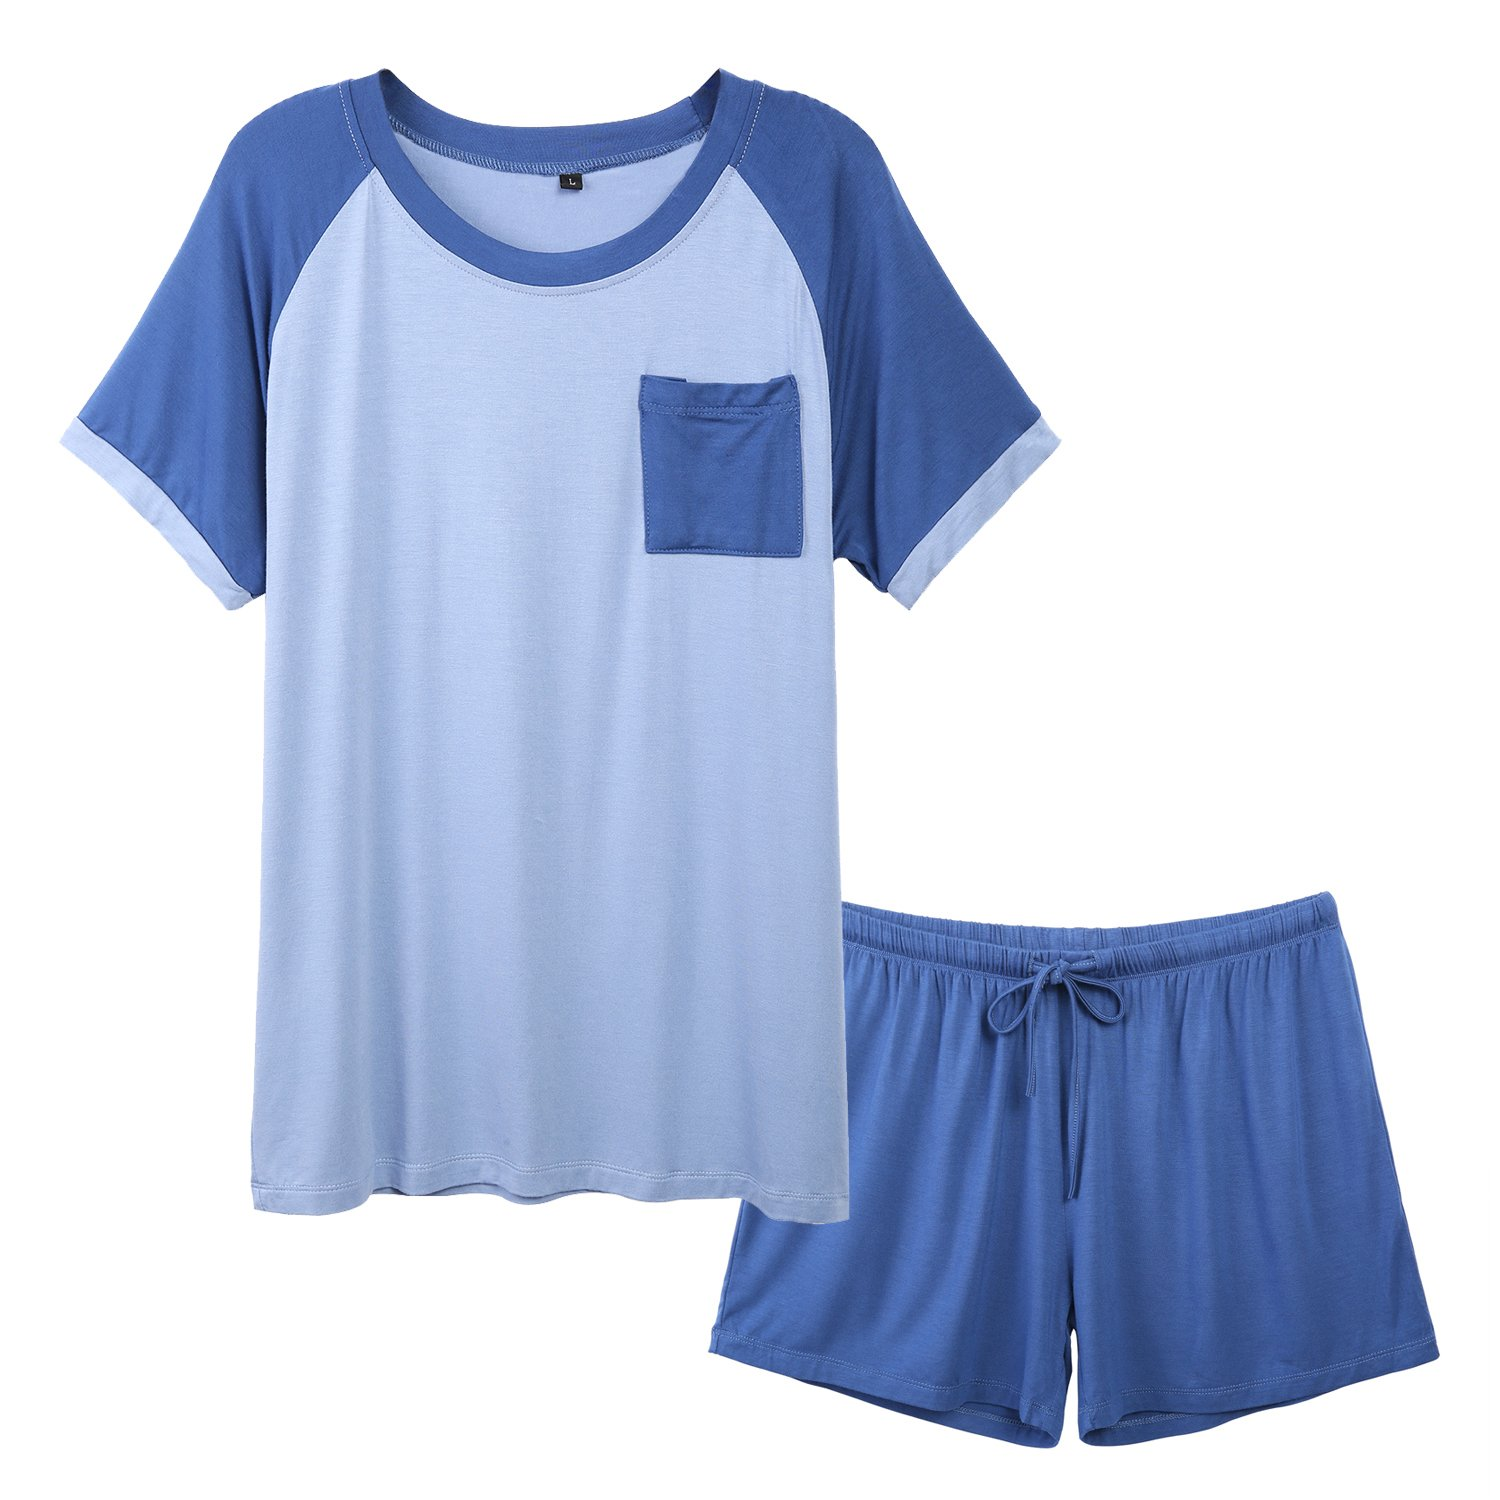 Women's Sleepwear Soft Short Sleeve Pajama Set